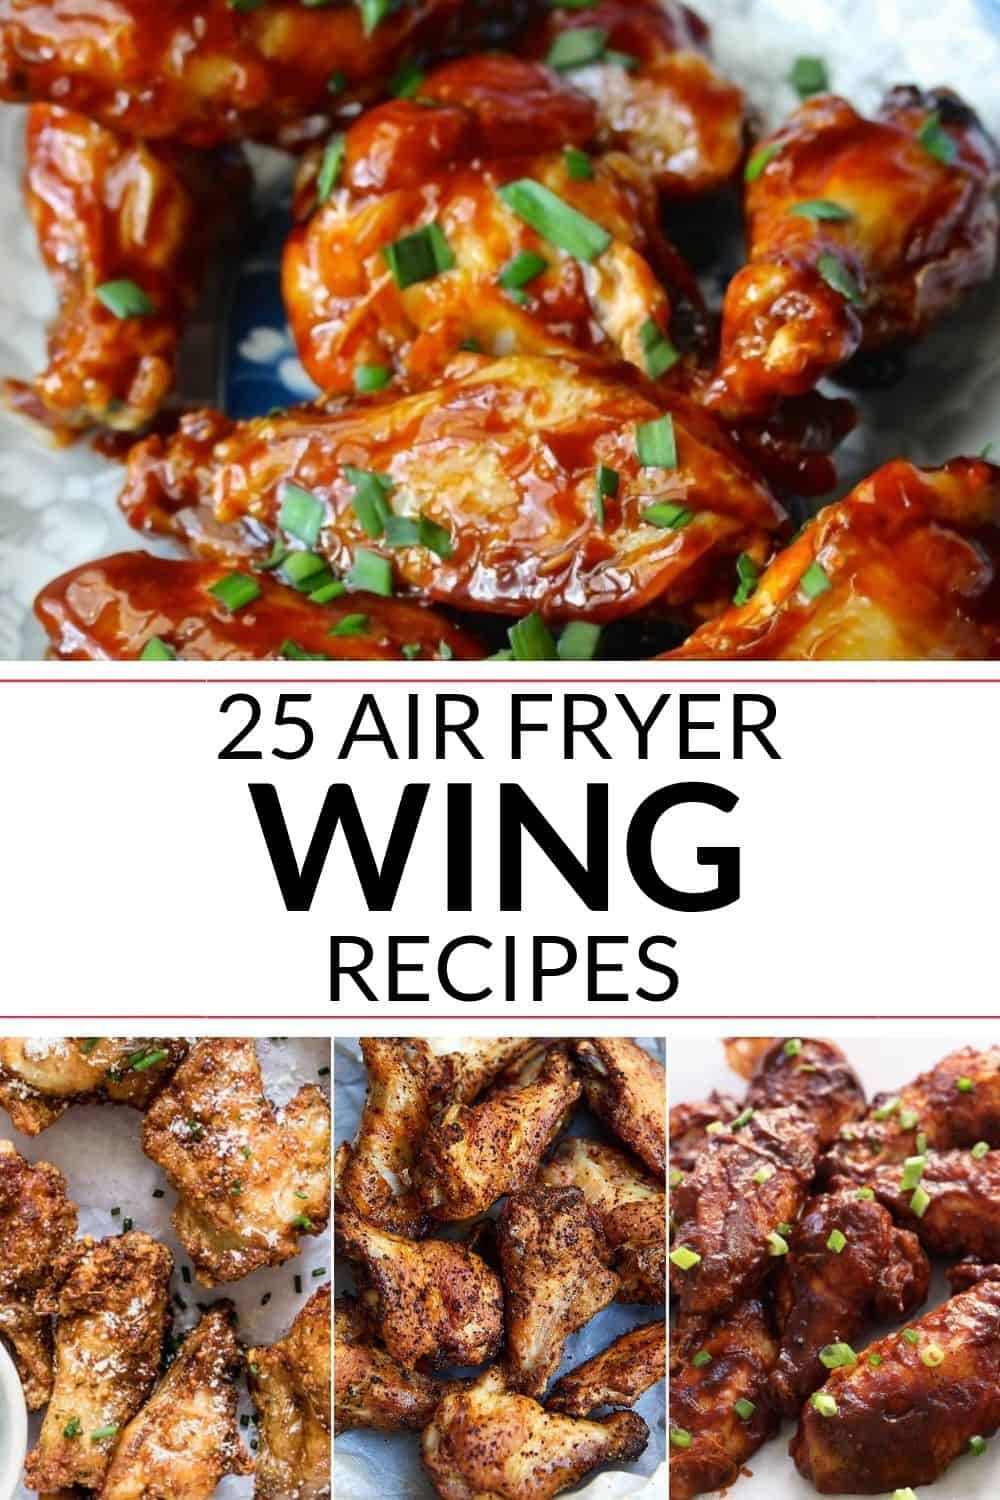 Try these amazing and easy air fryer wings recipes for your next wing night! These incredible and mouth watering wings are made in the air fryer and covered in incredible sauces.#itisakeeper #airfyer #wings #gameday #airfryerrecipes